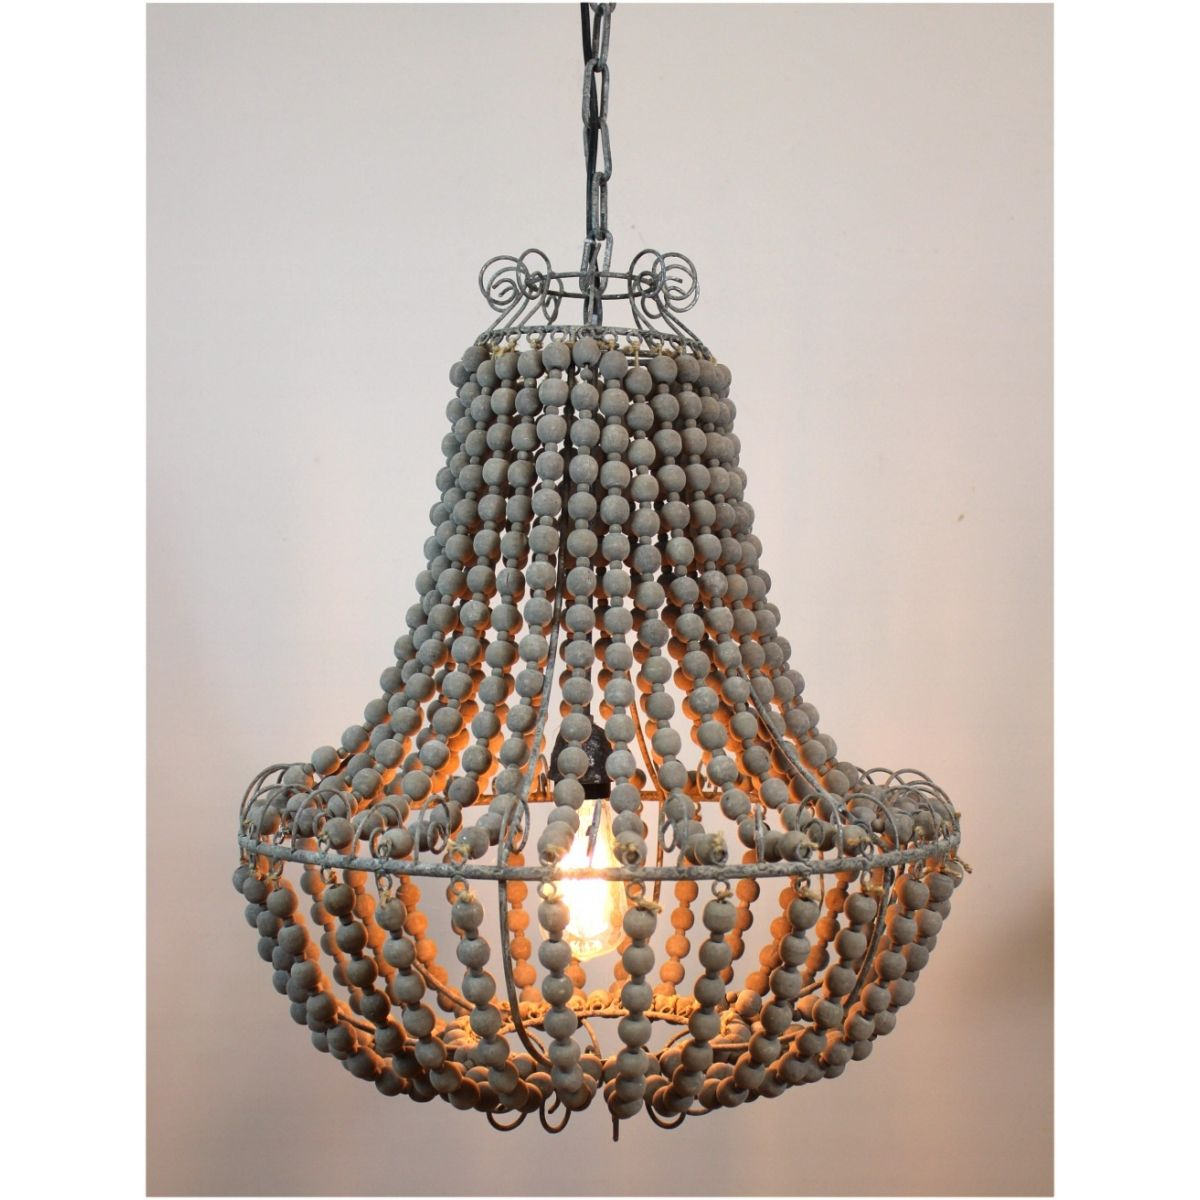 Aged Wooden Beaded Big Chandelier Hand Made Lighting Fixture Ceiling Mounted Vintage Style